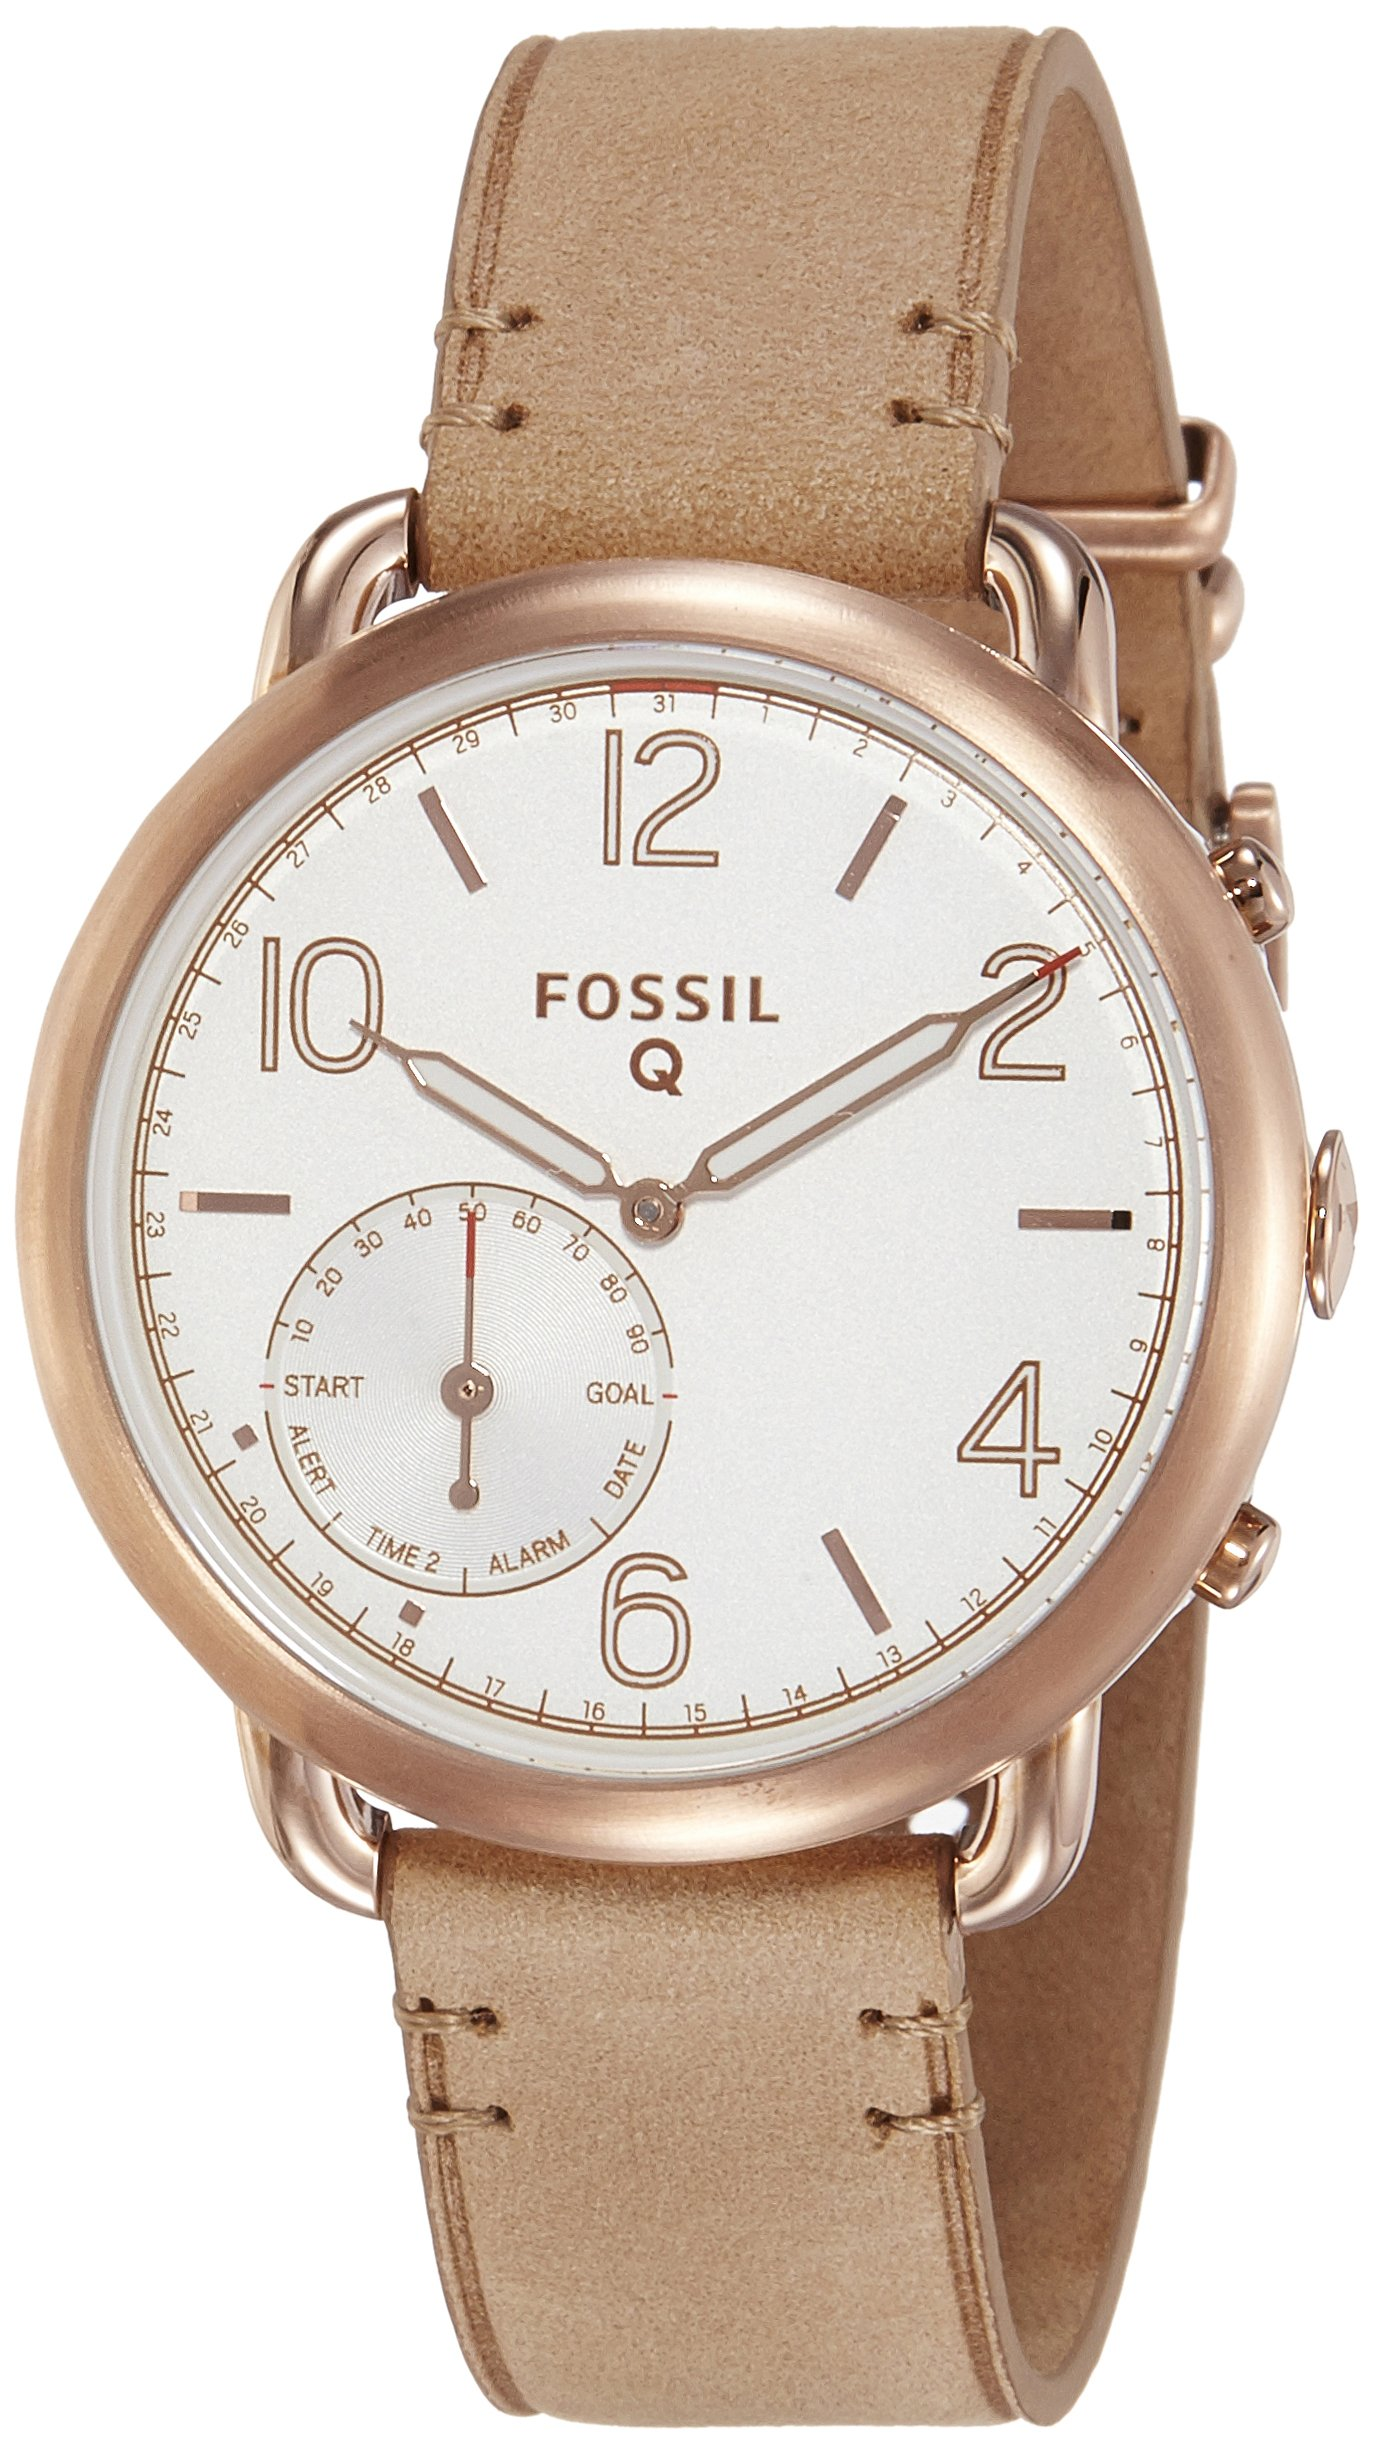 Fossil Hybrid Smartwatch - Q Tailor Light Brown Leather by Fossil